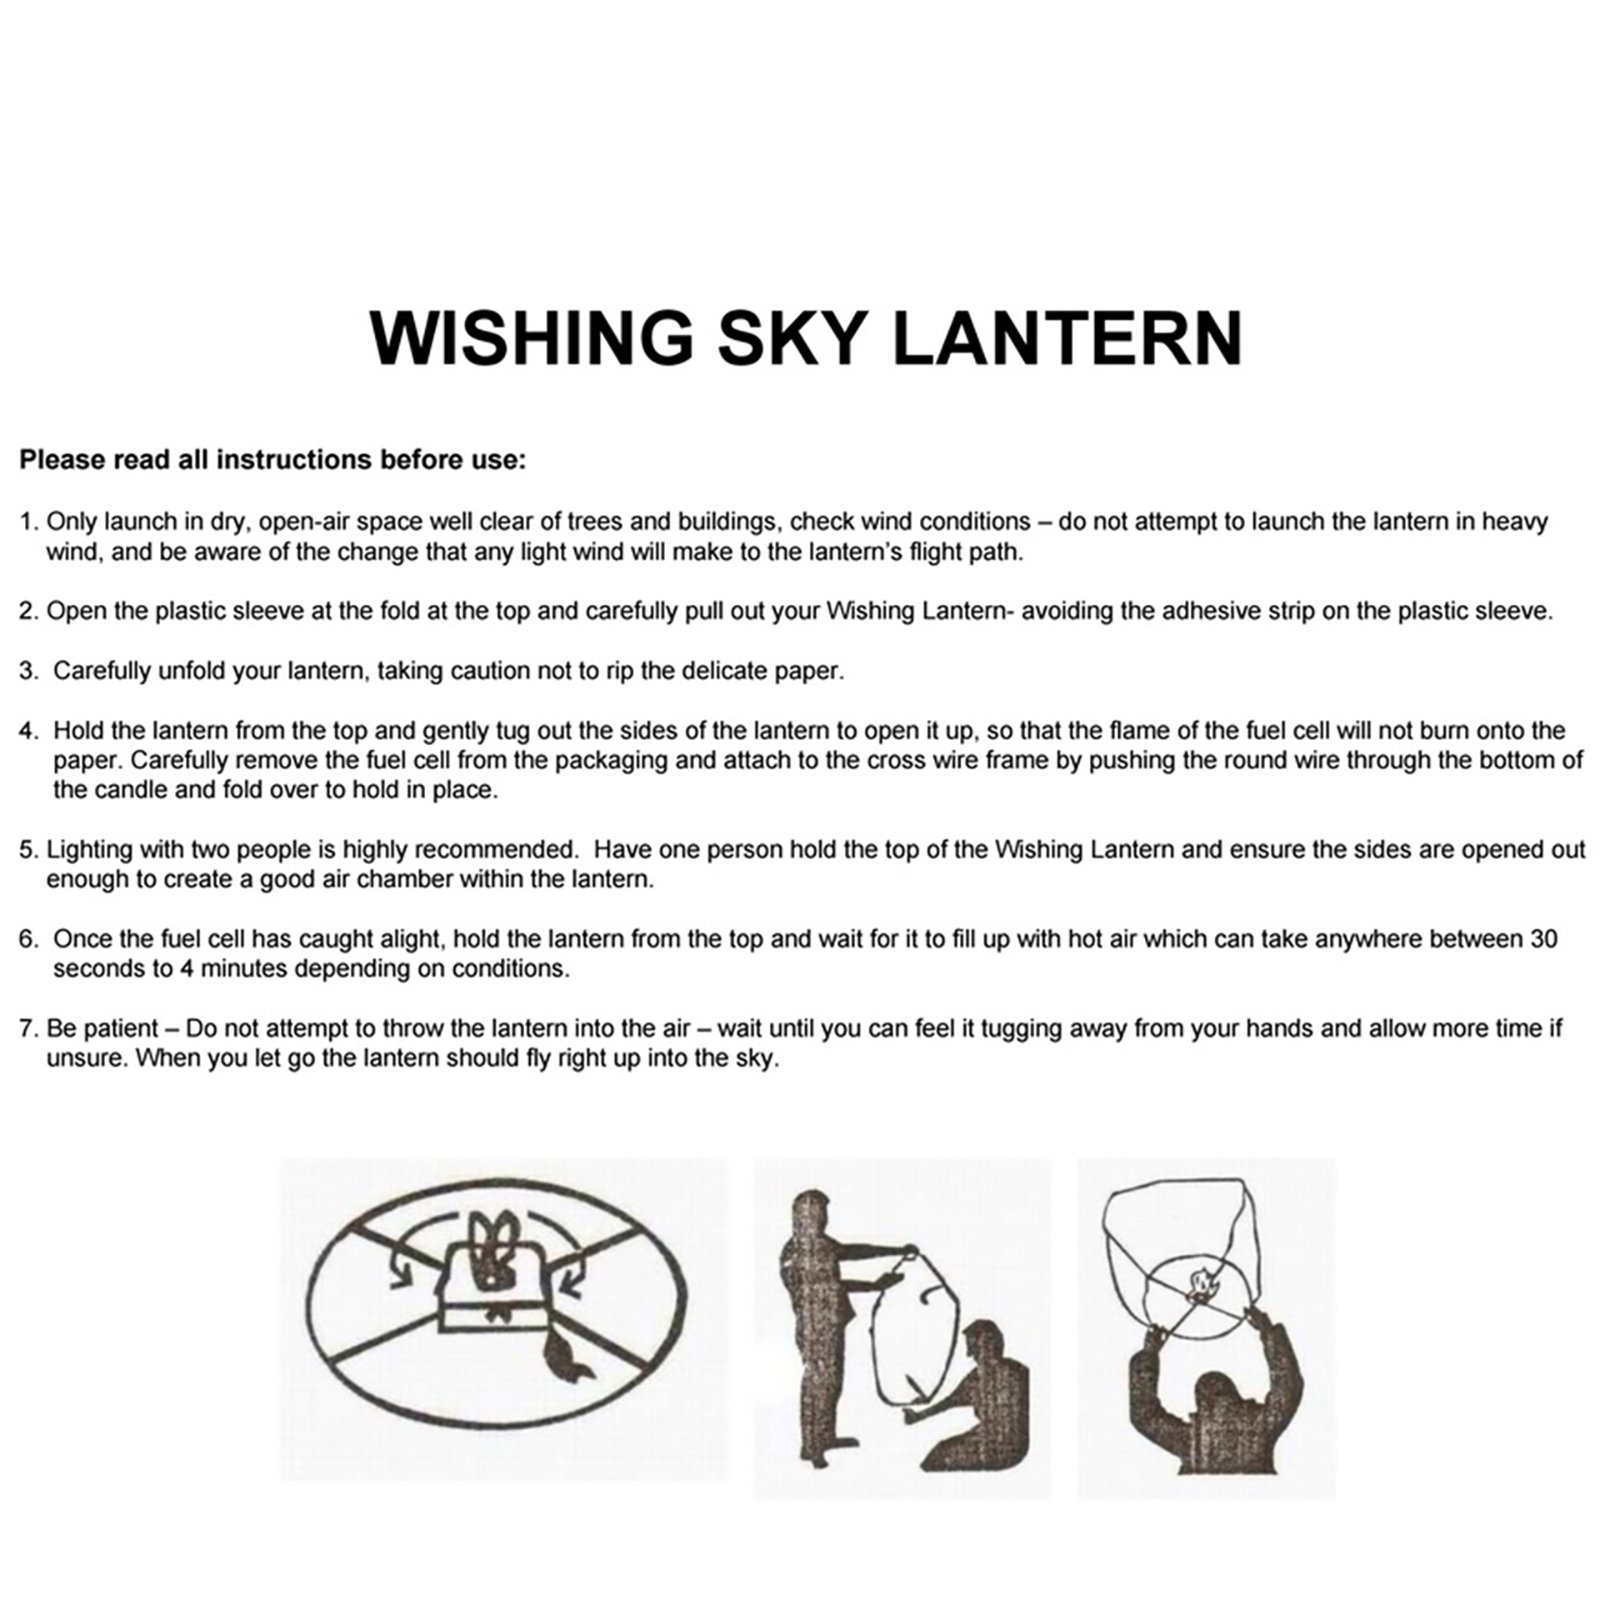 Commercial Bargains 300 Colored Paper Chinese Sky Fire Lanterns Wishing Flying Candle Lamp